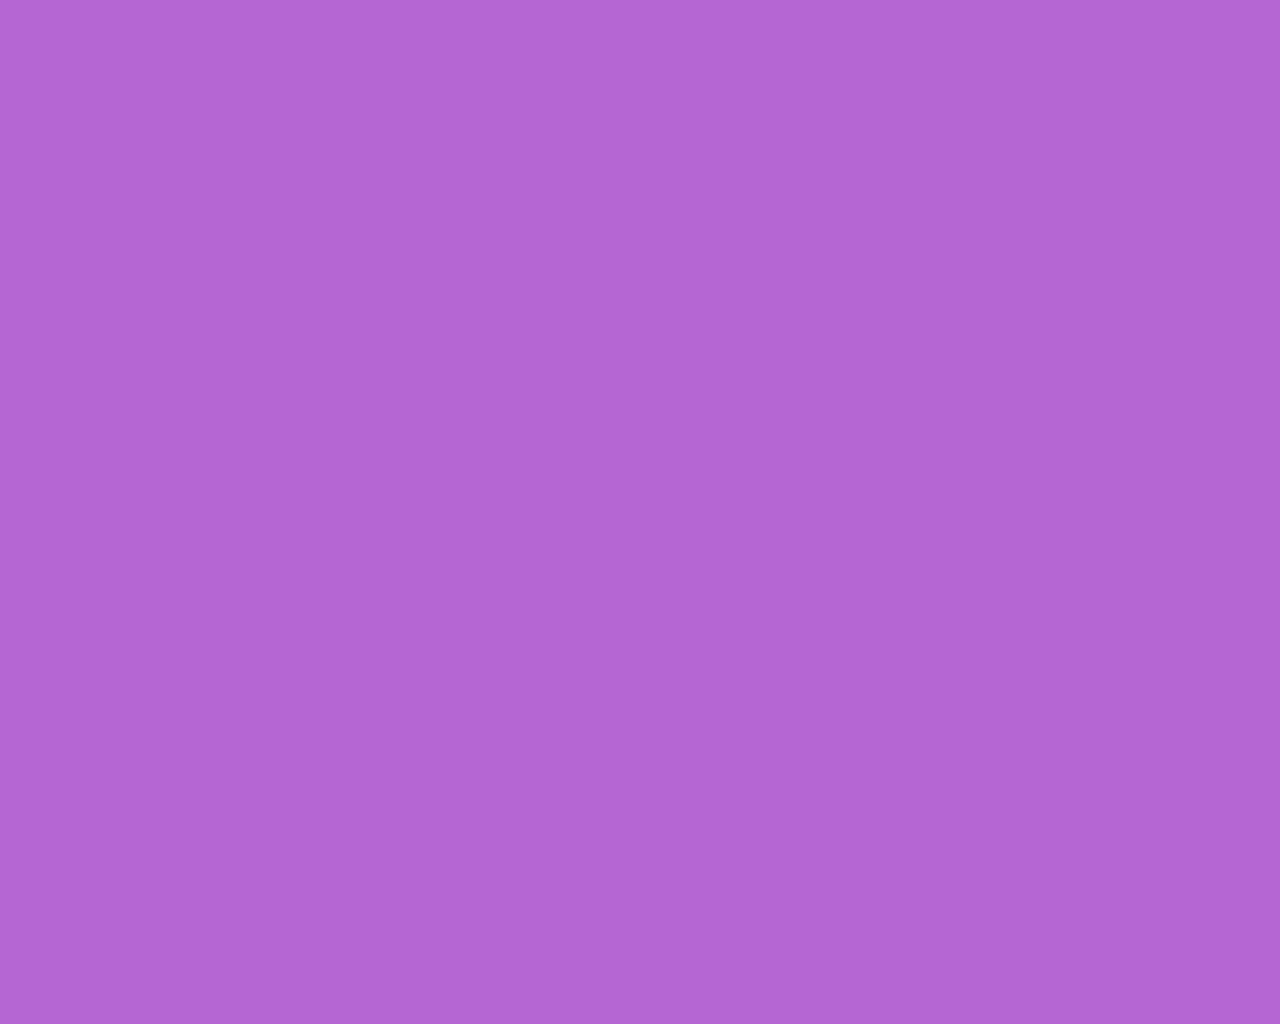 1280x1024 Rich Lilac Solid Color Background